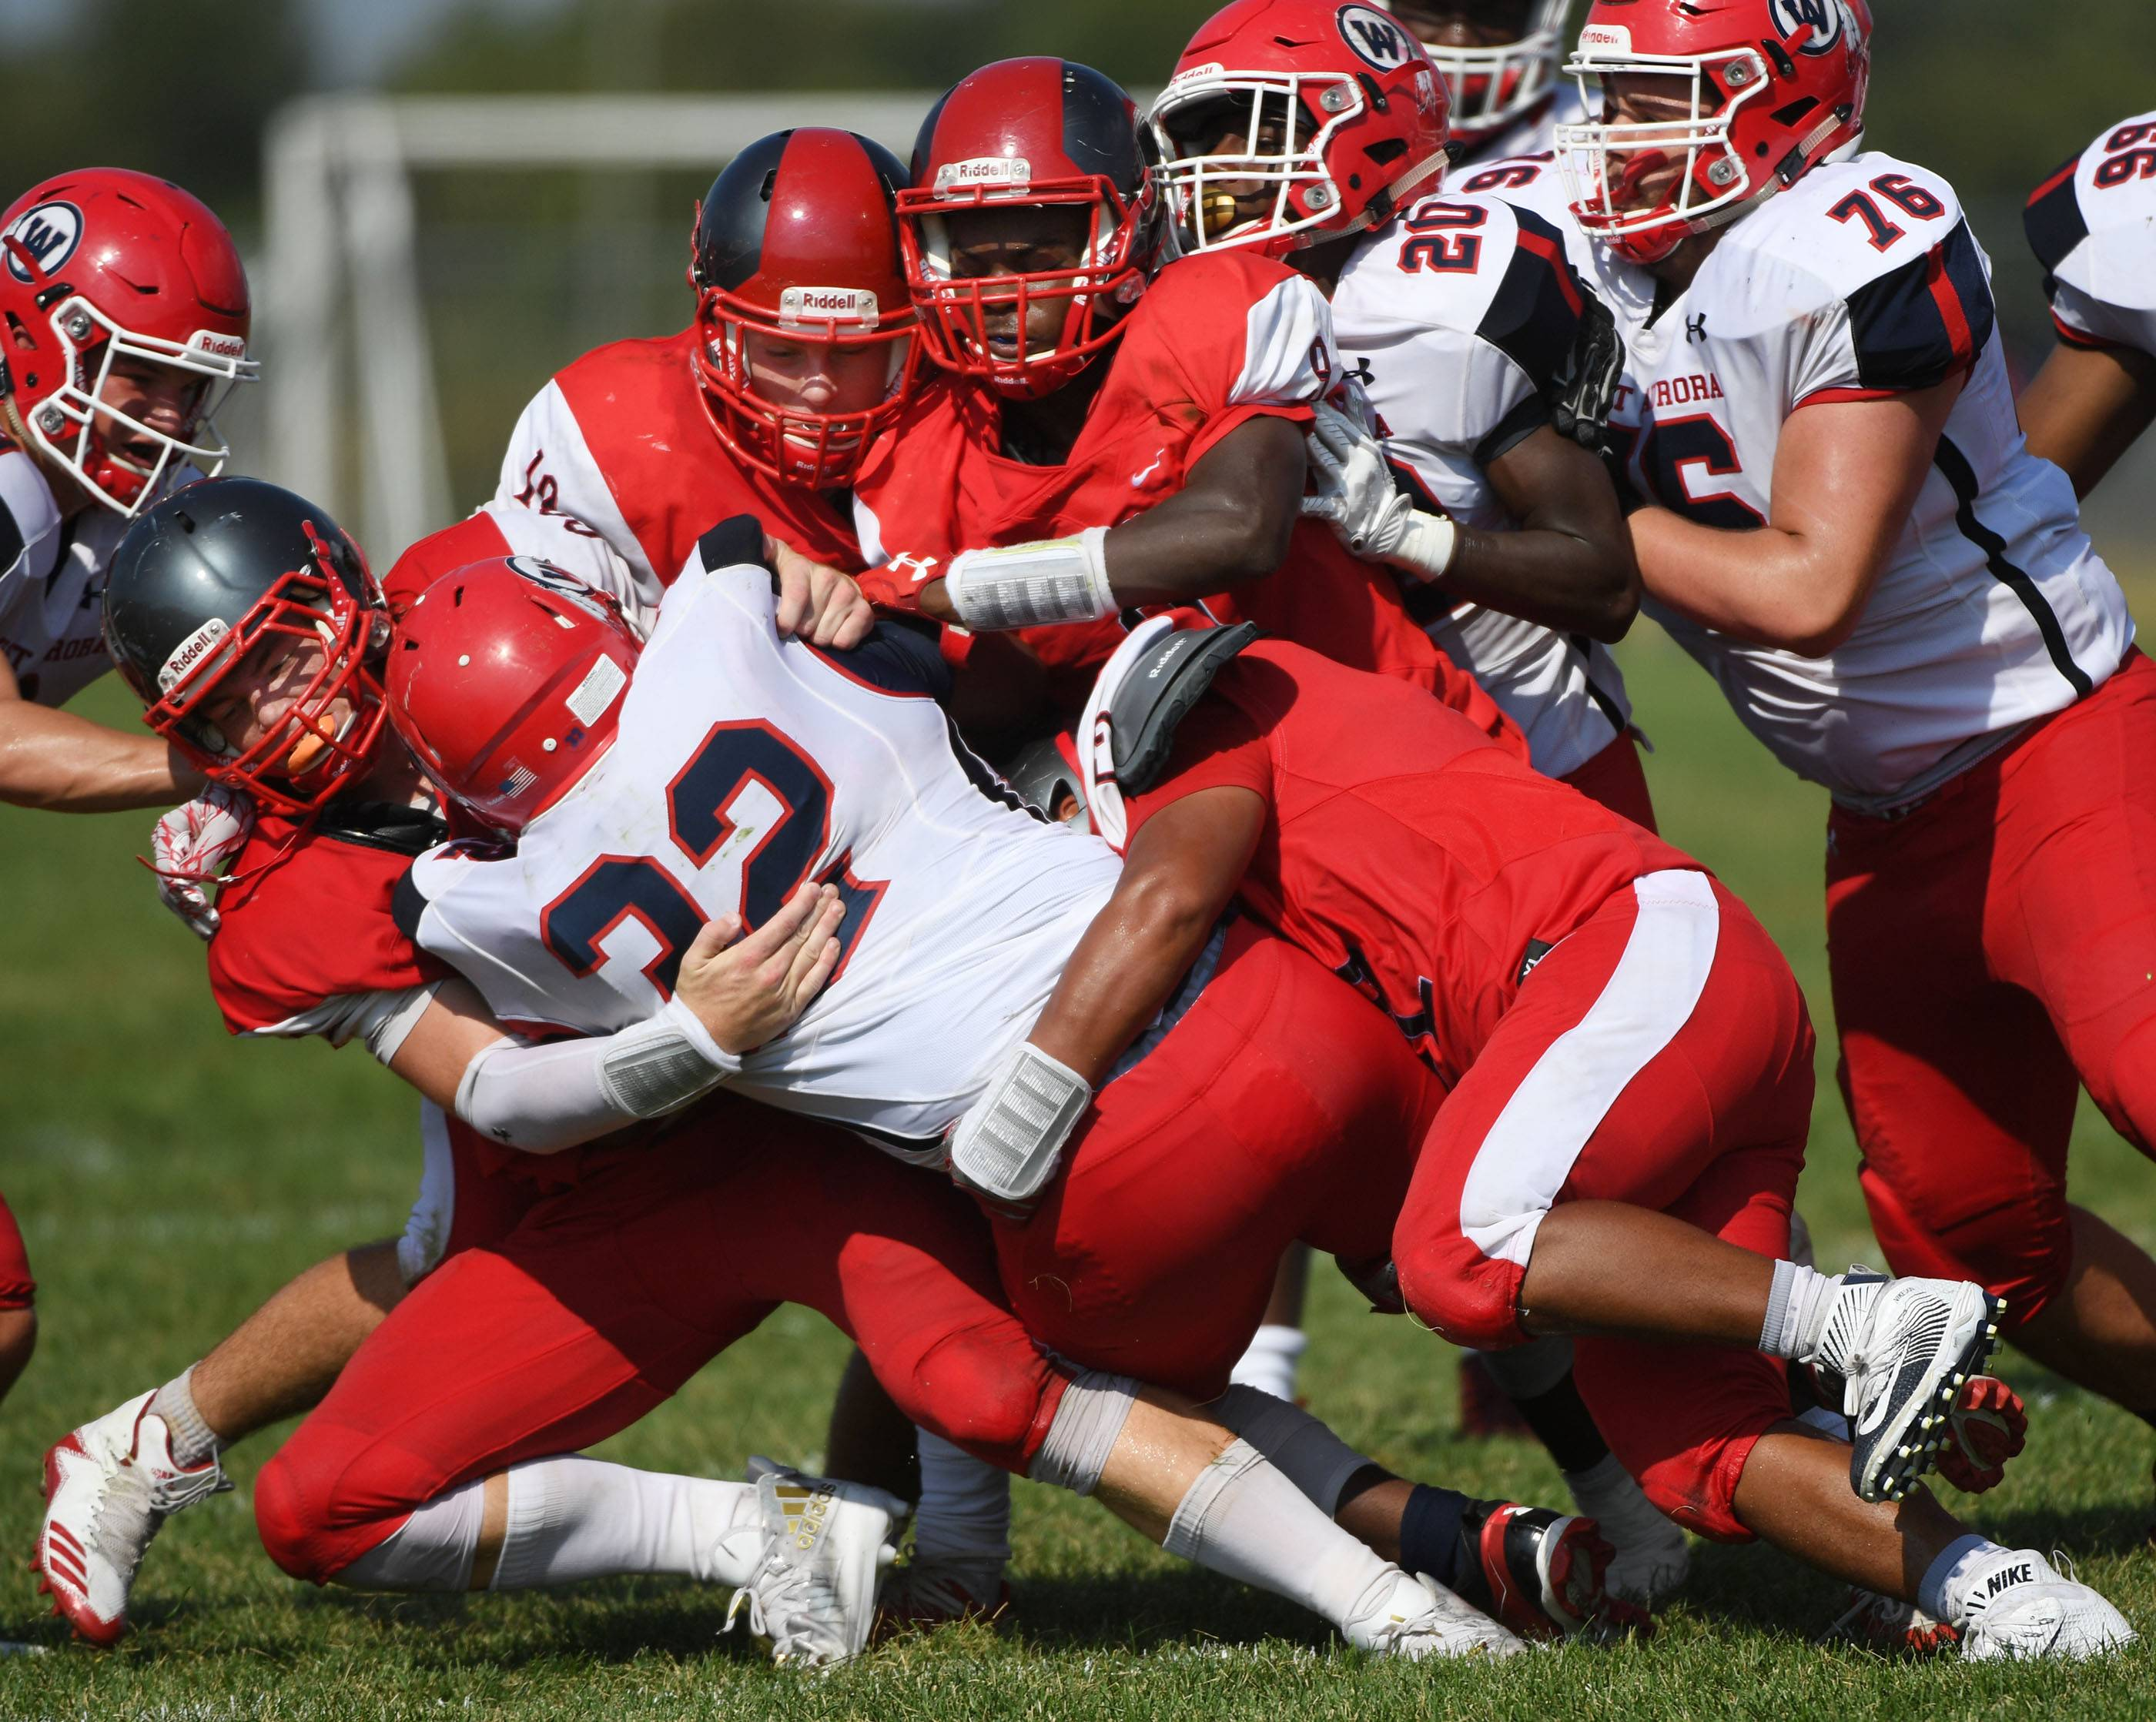 Four South Elgin players bring down West Aurora's Trevon Tittle Saturday in South Elgin.